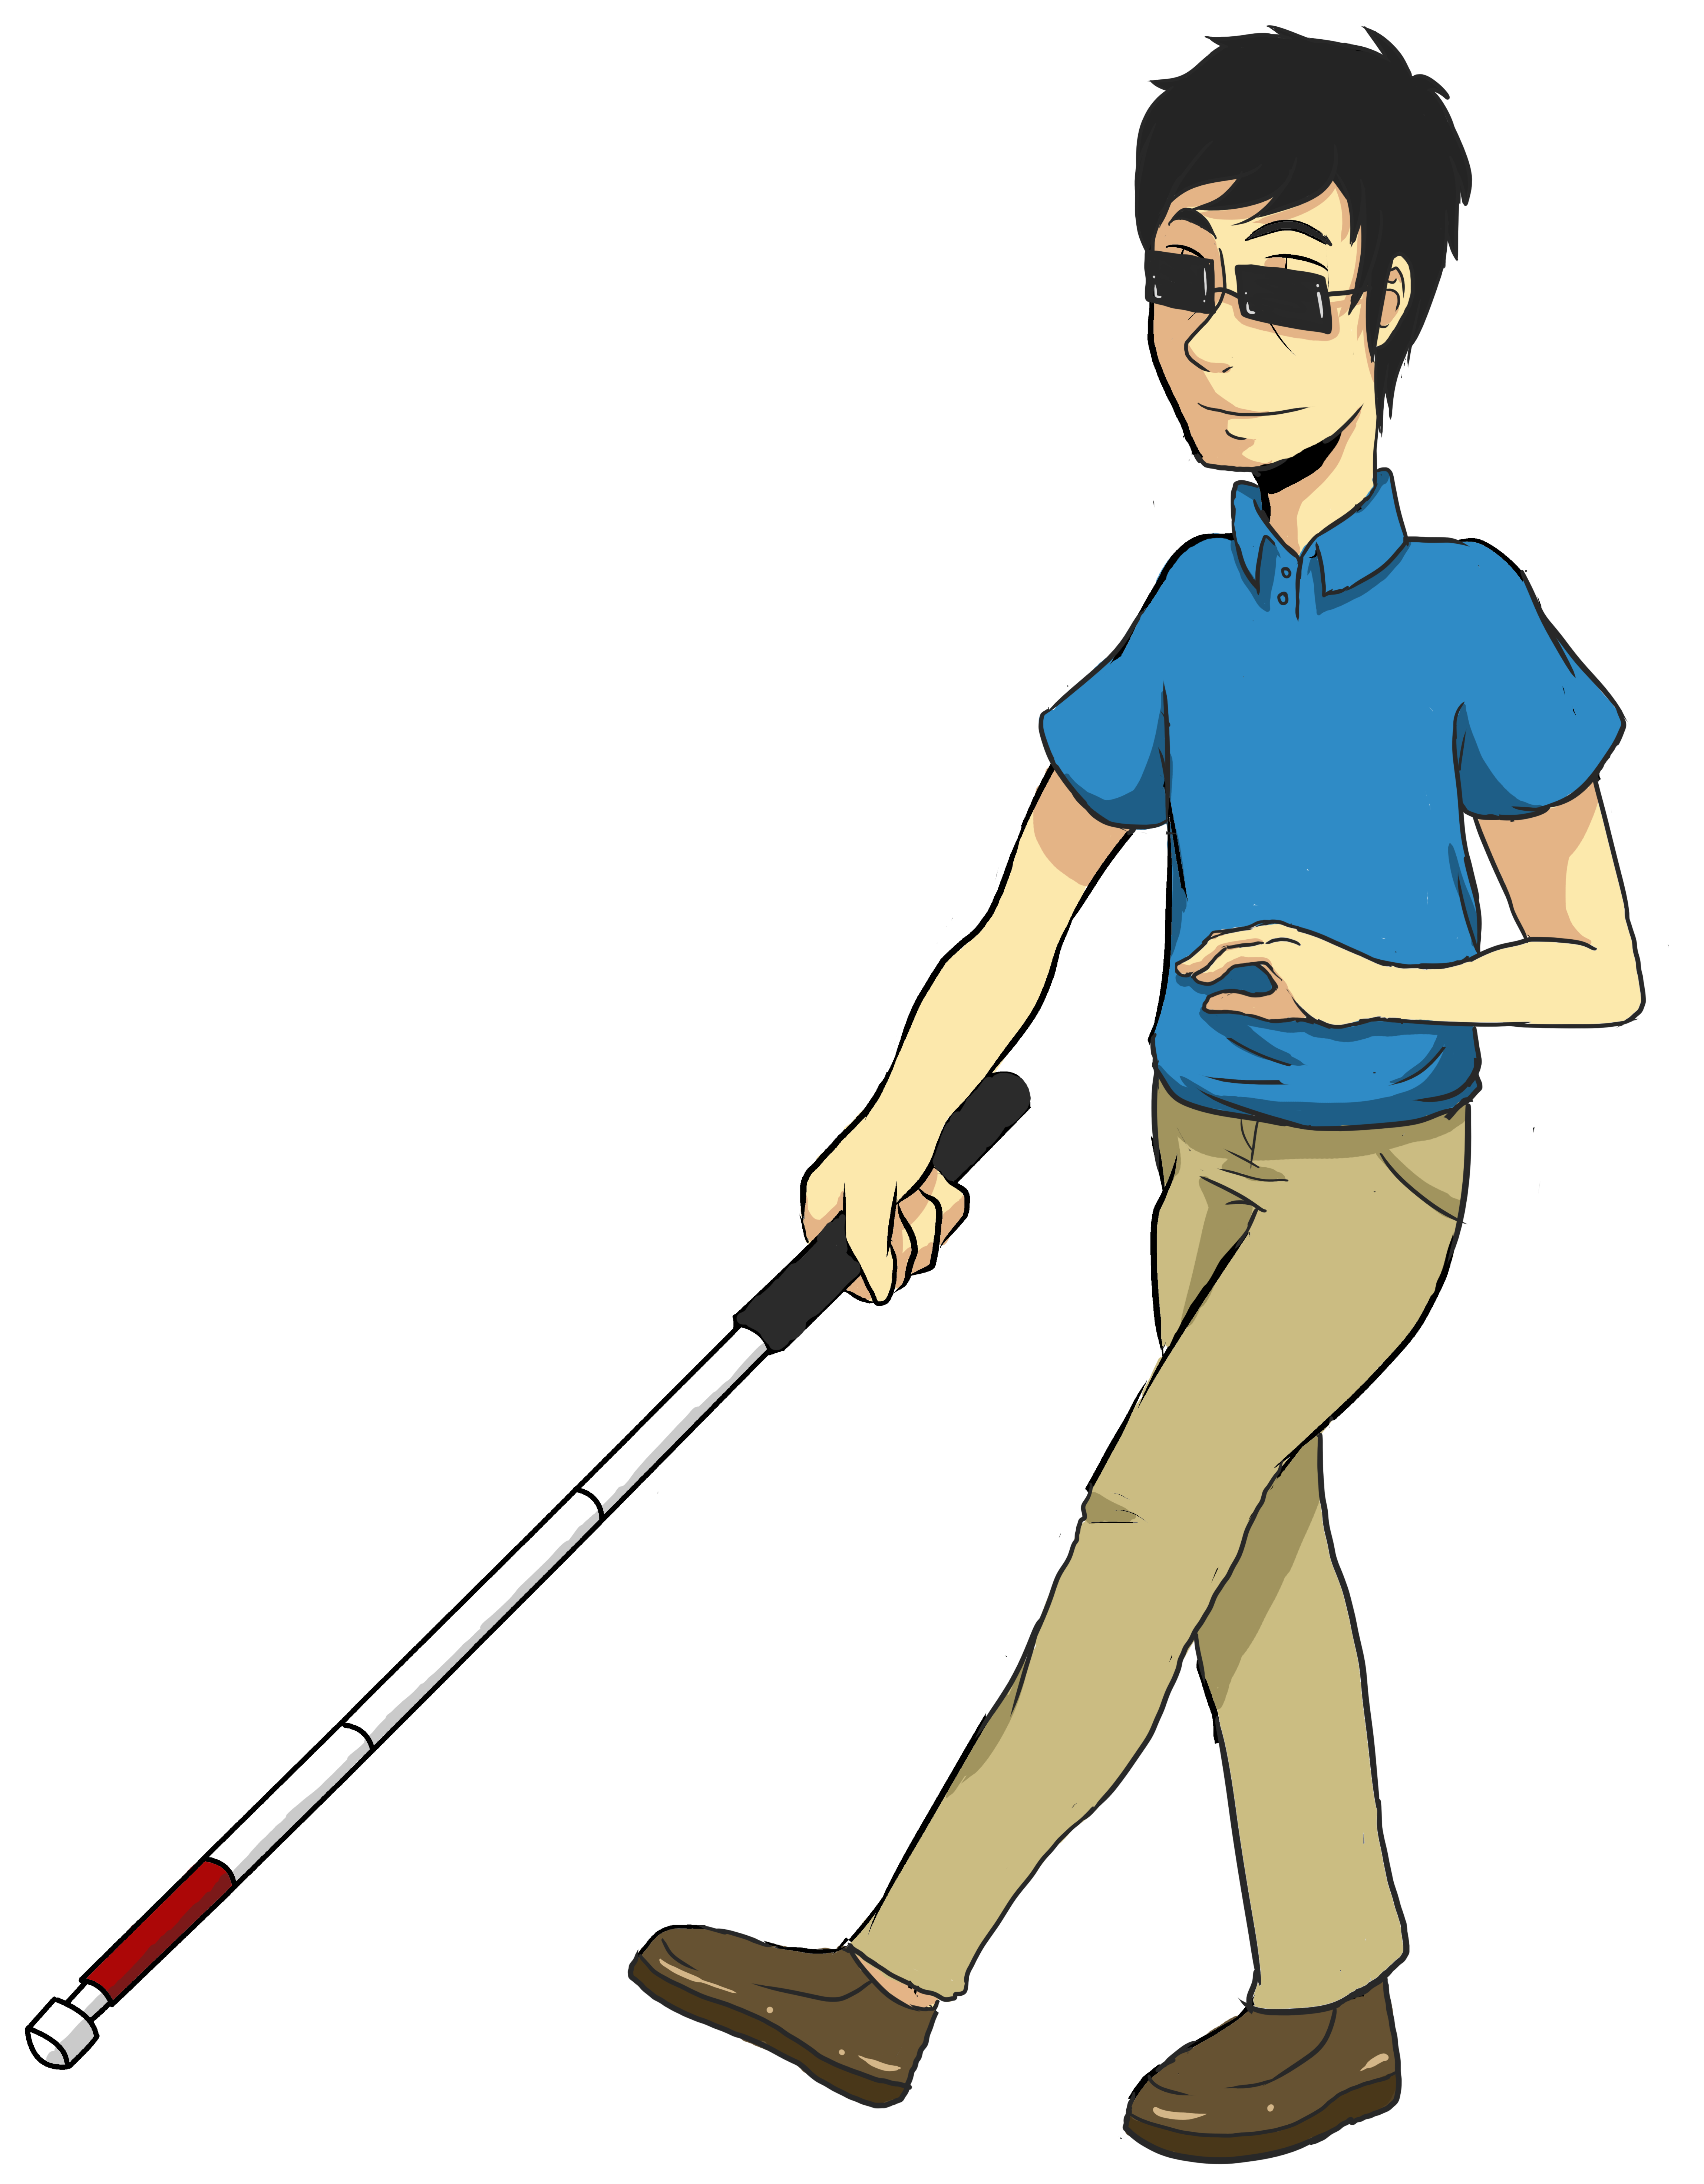 White Cane Awareness Day Walk For Independence